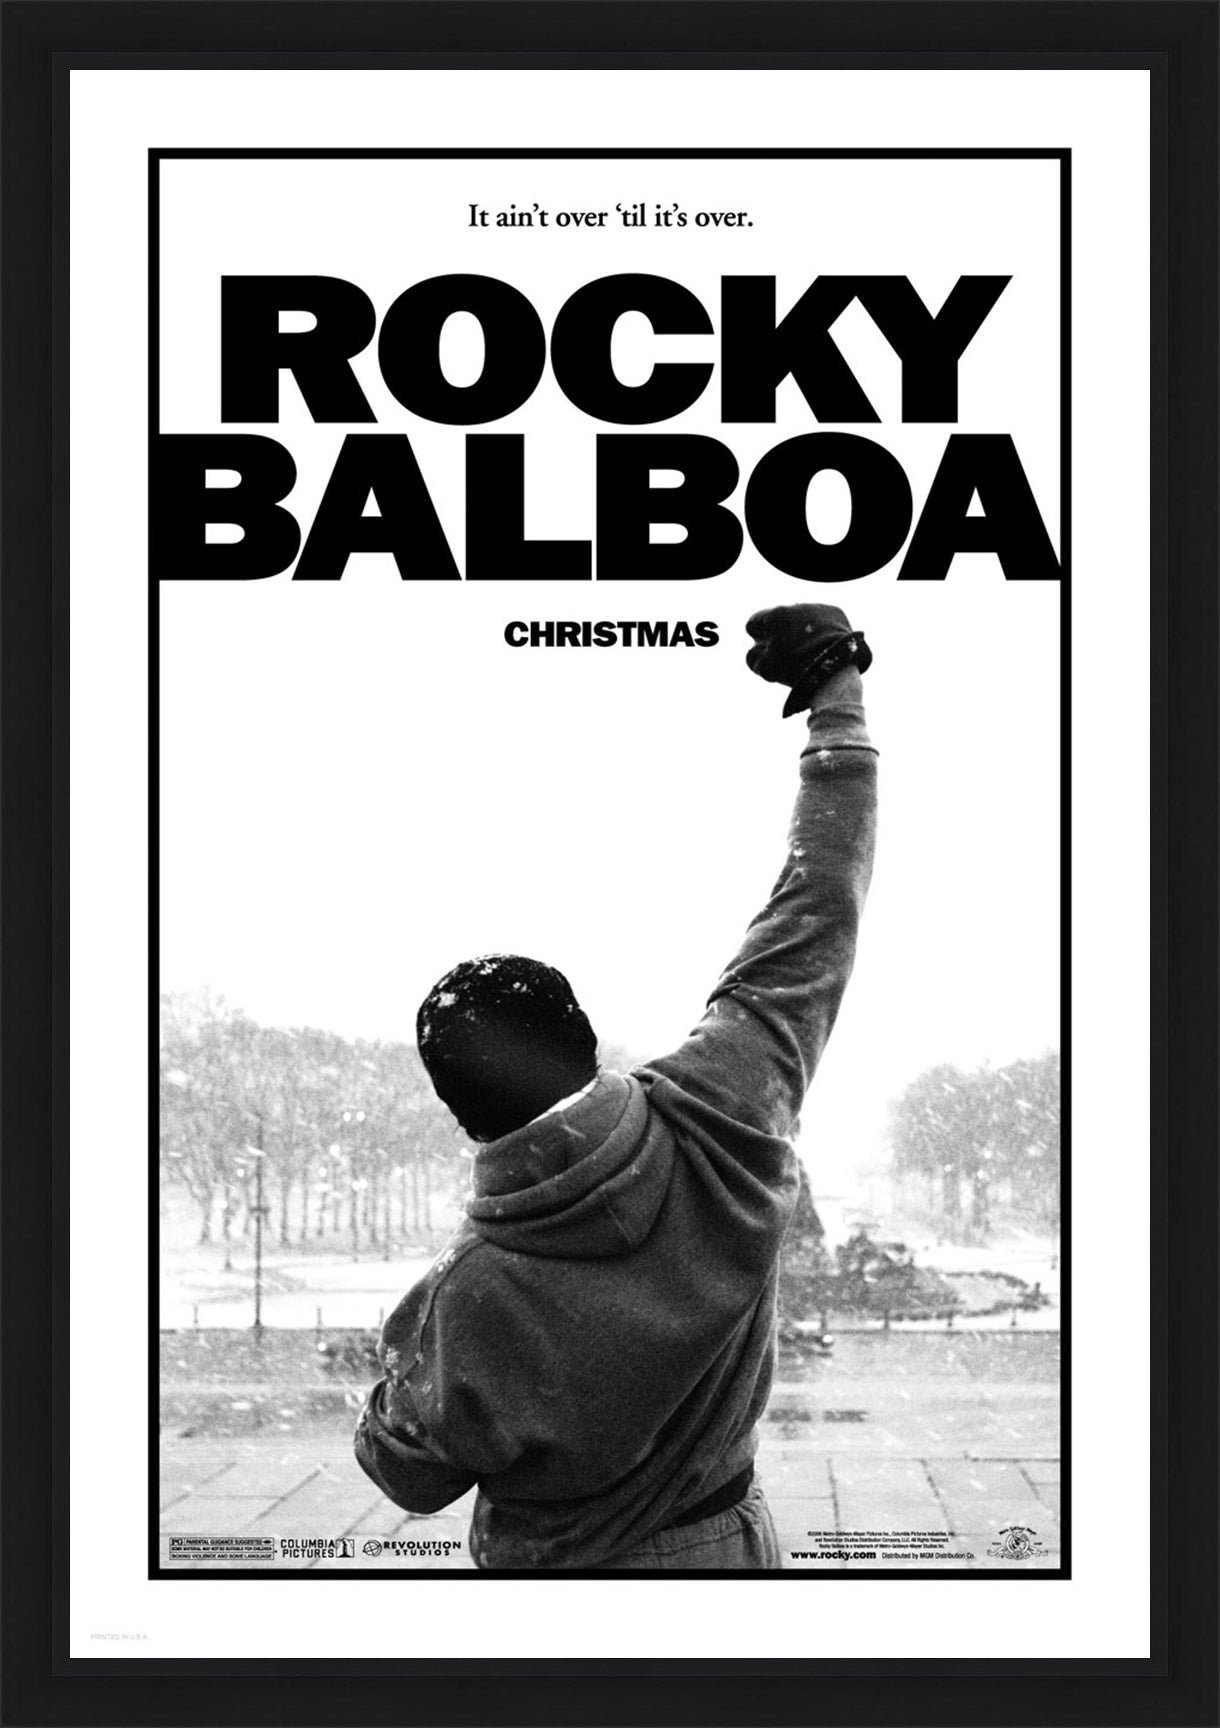 An original movie poster for the Sylvester Stallone film Rocky Balboa